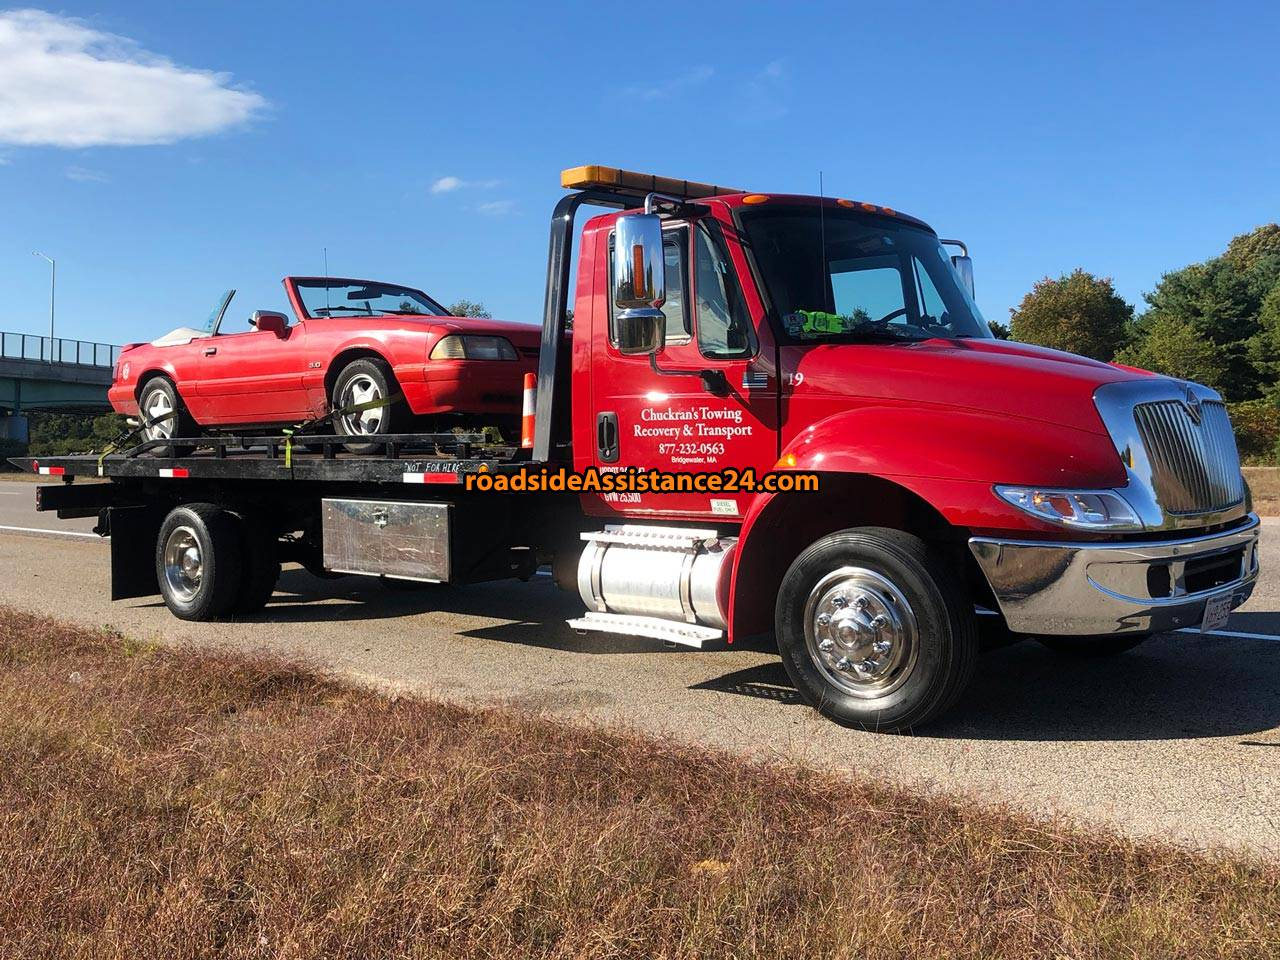 Chuckran's Towing, Recovery & Transport